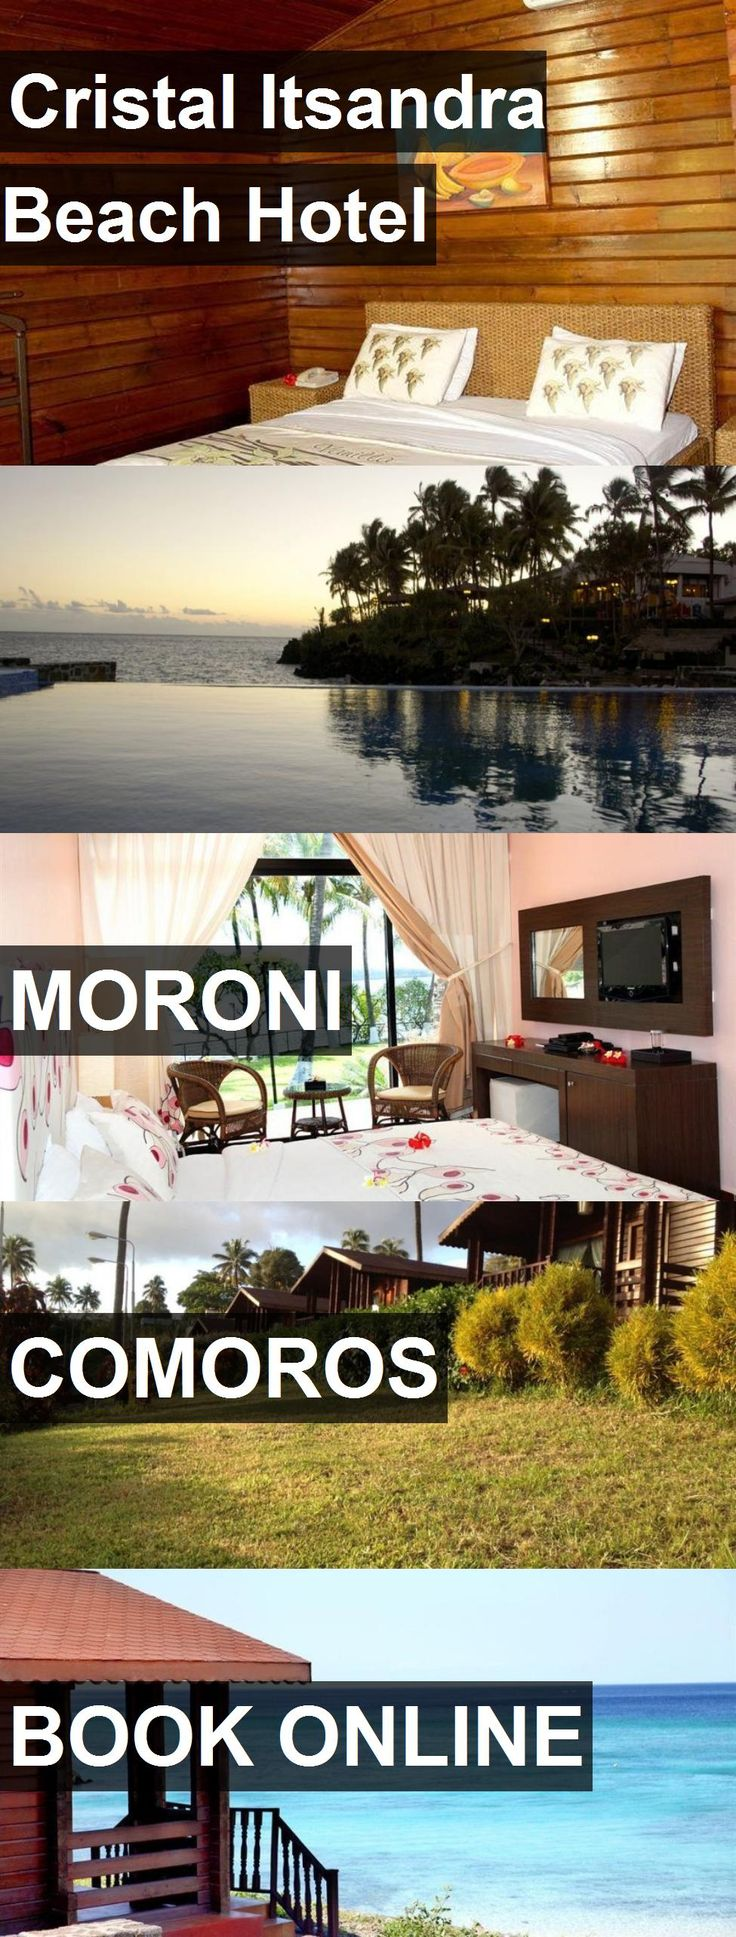 Hotel Cristal Itsandra Beach Hotel in Moroni, Comoros. For more information, photos, reviews and best prices please follow the link. #Comoros #Moroni #CristalItsandraBeachHotel #hotel #travel #vacation